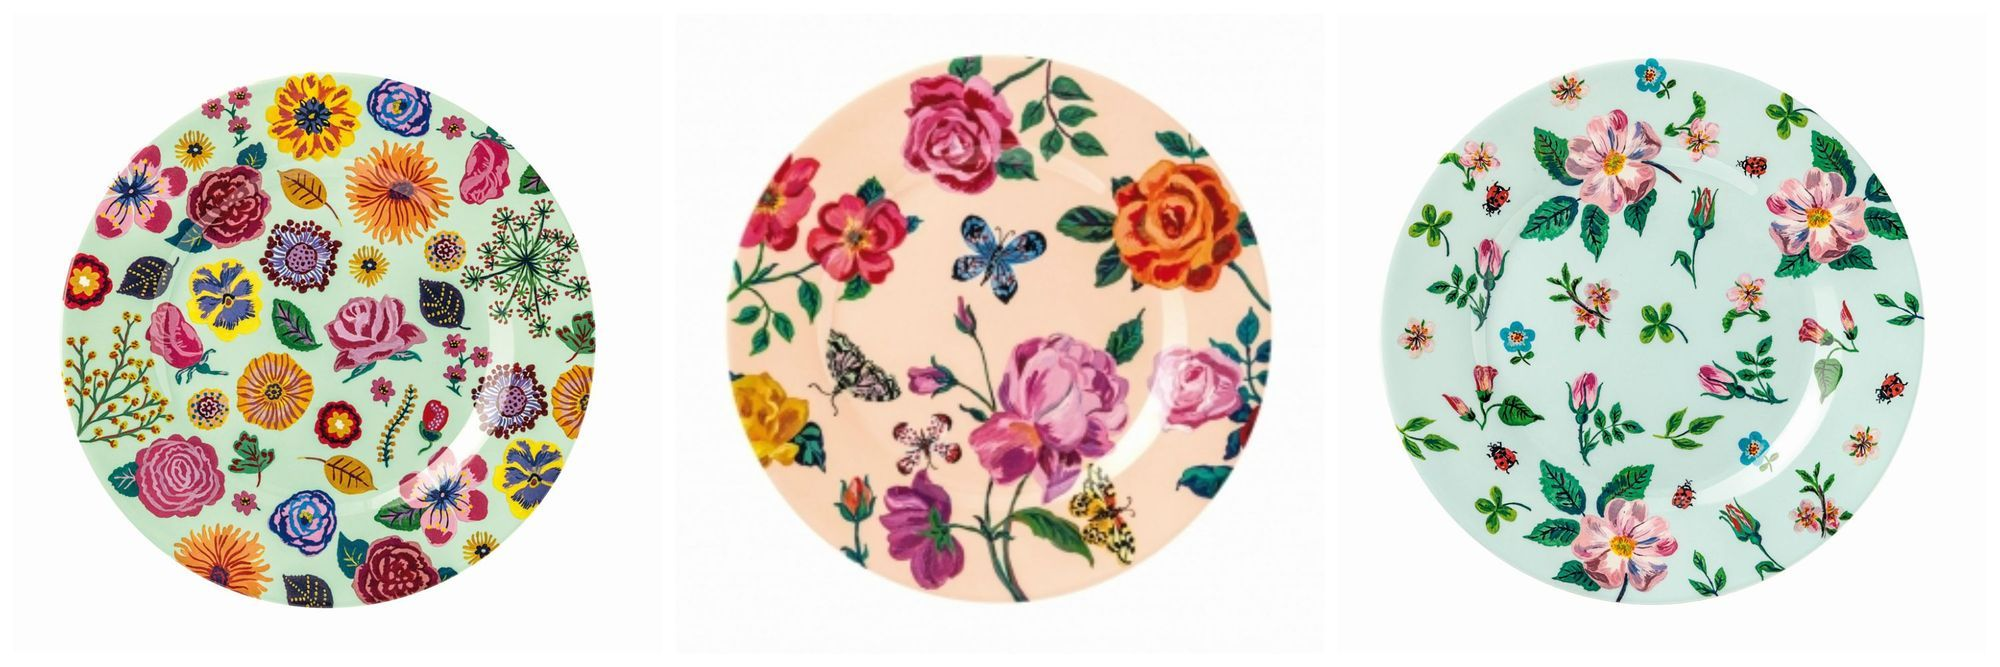 Why not buy more than one style to have a really funky tableware collection for picnics u0026 outdoor eating this summer?  sc 1 st  Birdkids & Tableware For Summer Picnics | Melamine Tableware